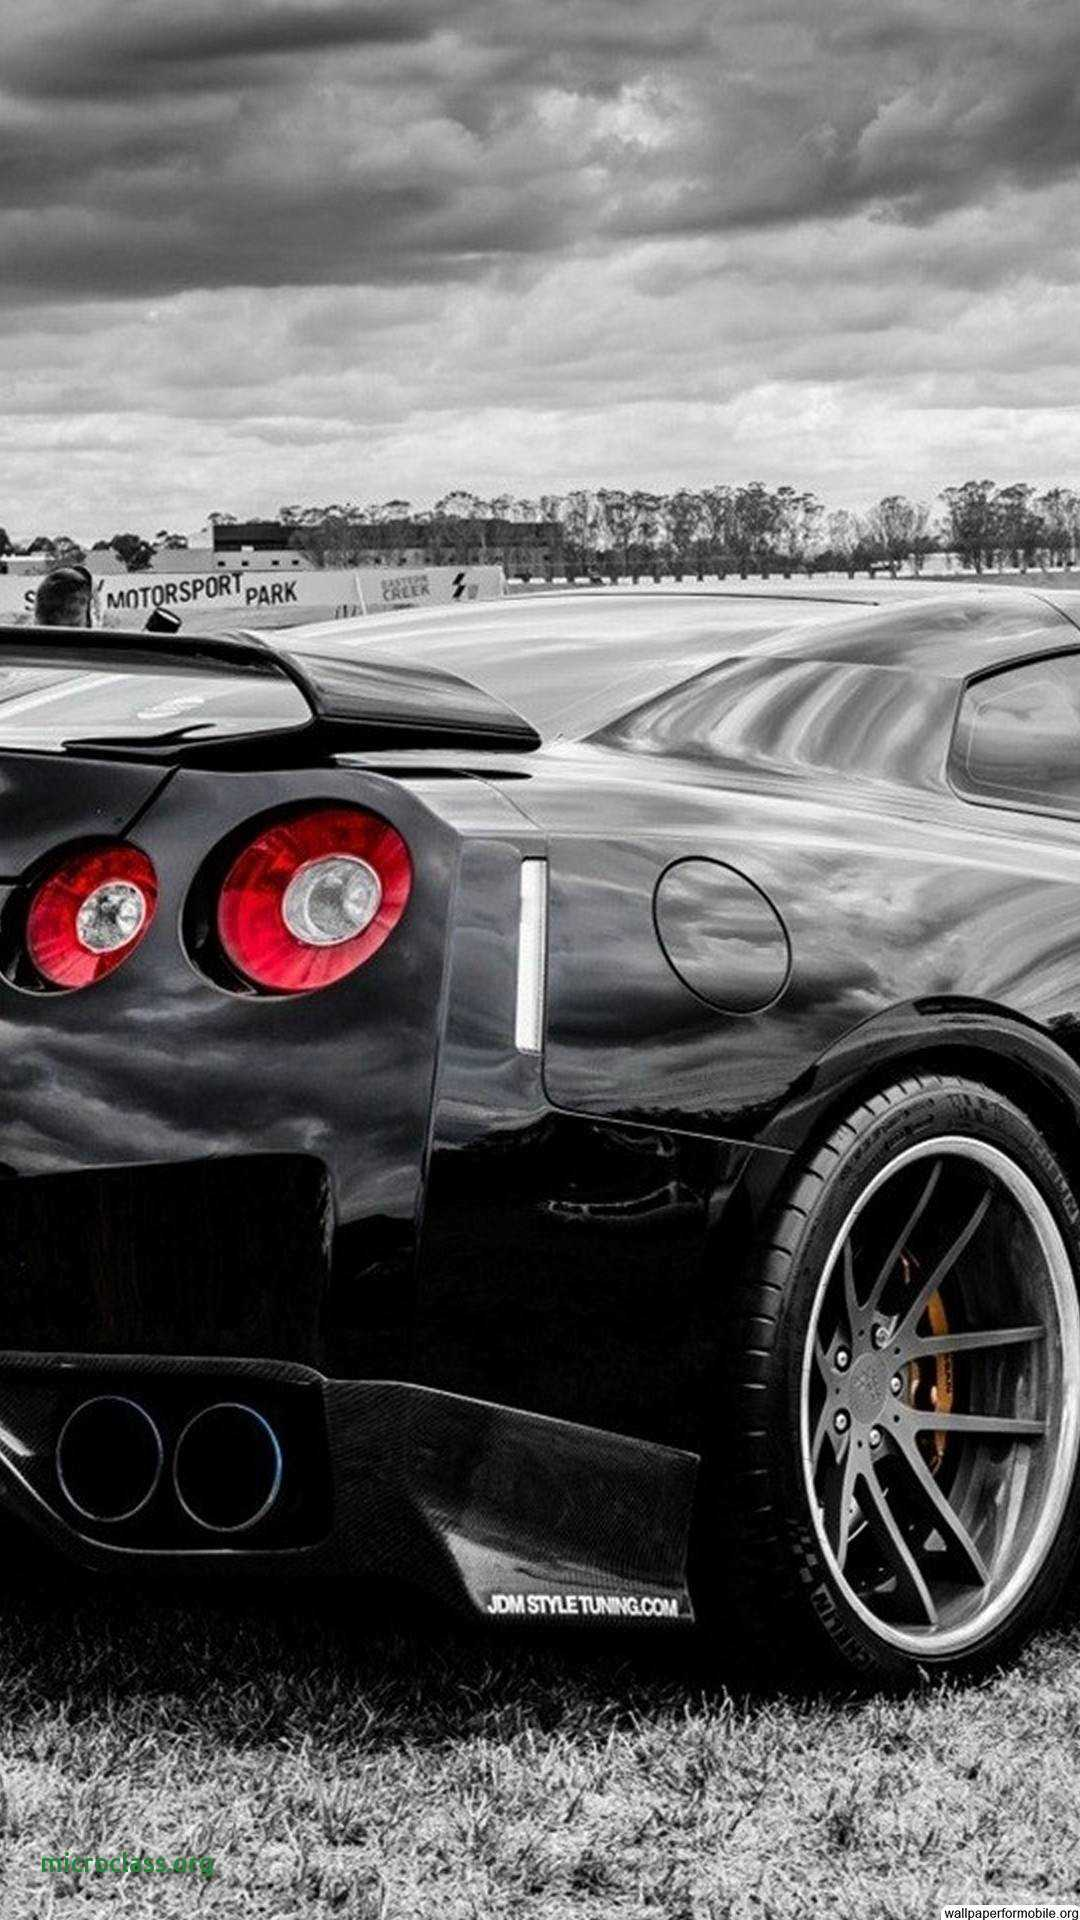 Jdm Iphone Wallpaper Images Best Of Of Hd Japan Car Nissan Gtr Wallpaper Iphone 1080x1920 Wallpaper Teahub Io